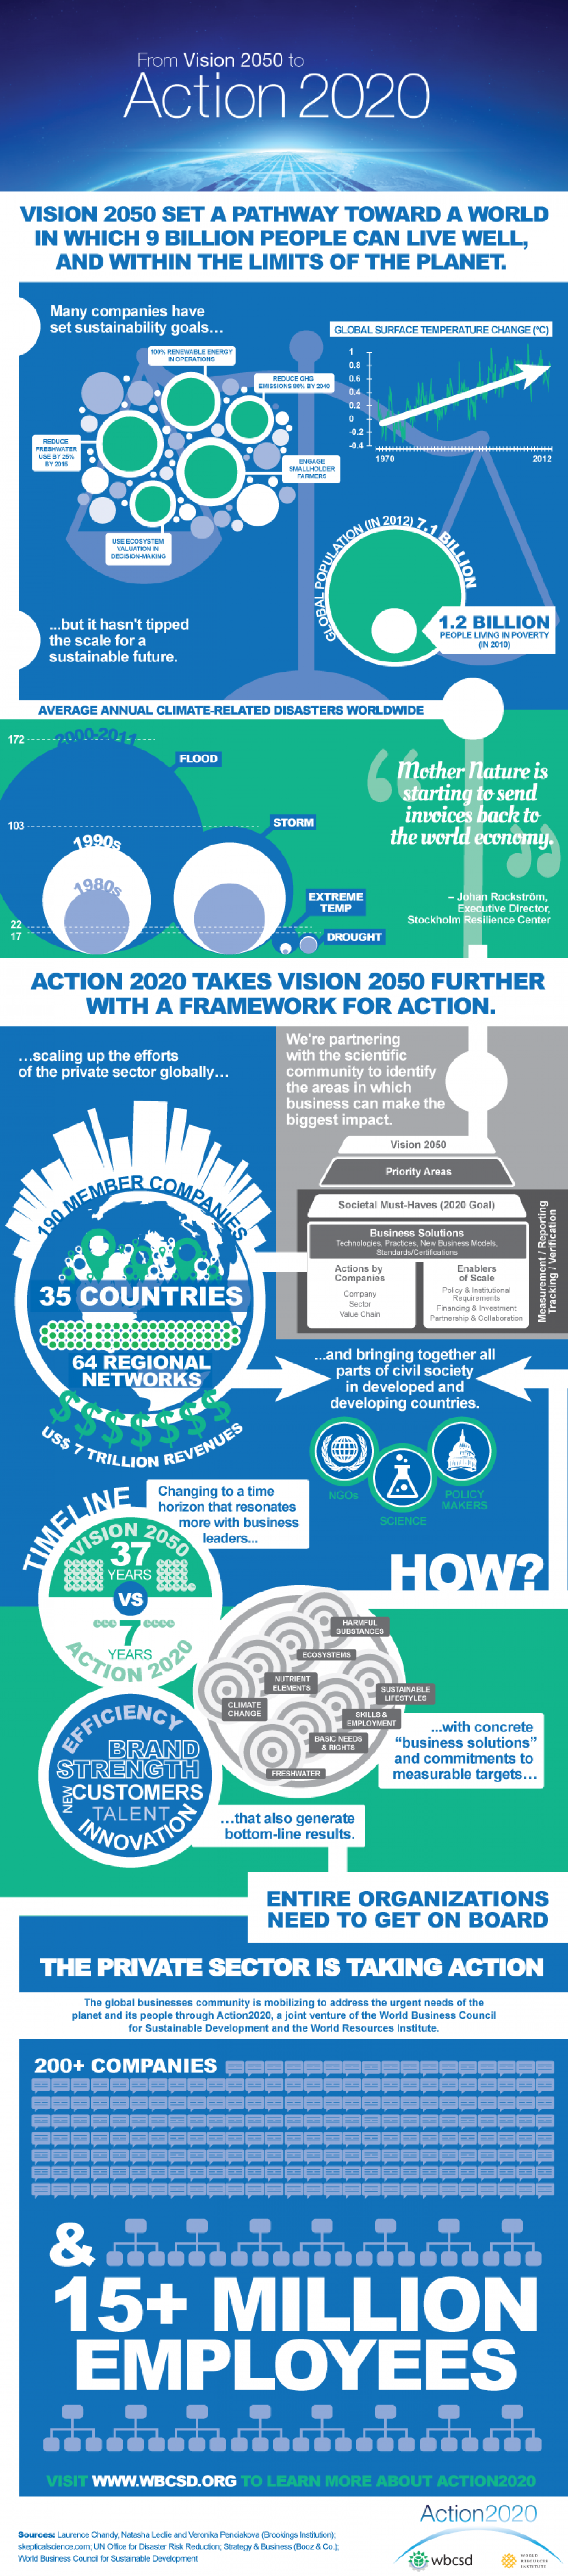 From Vision 2050 to Action 2020 Infographic